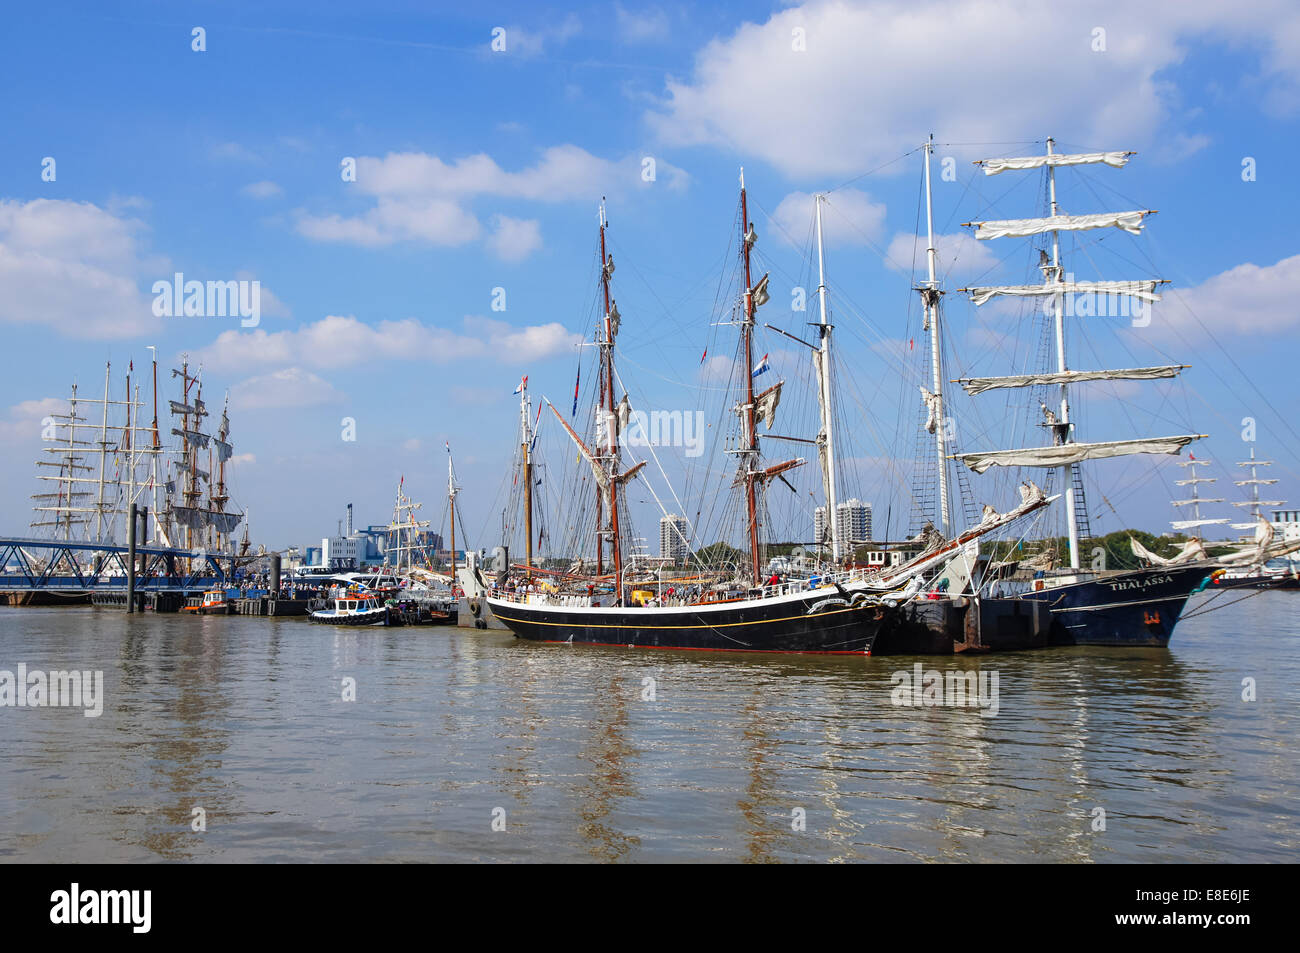 The Royal Greenwich Tall Ships Festival, London England United Kingdom UK - Stock Image